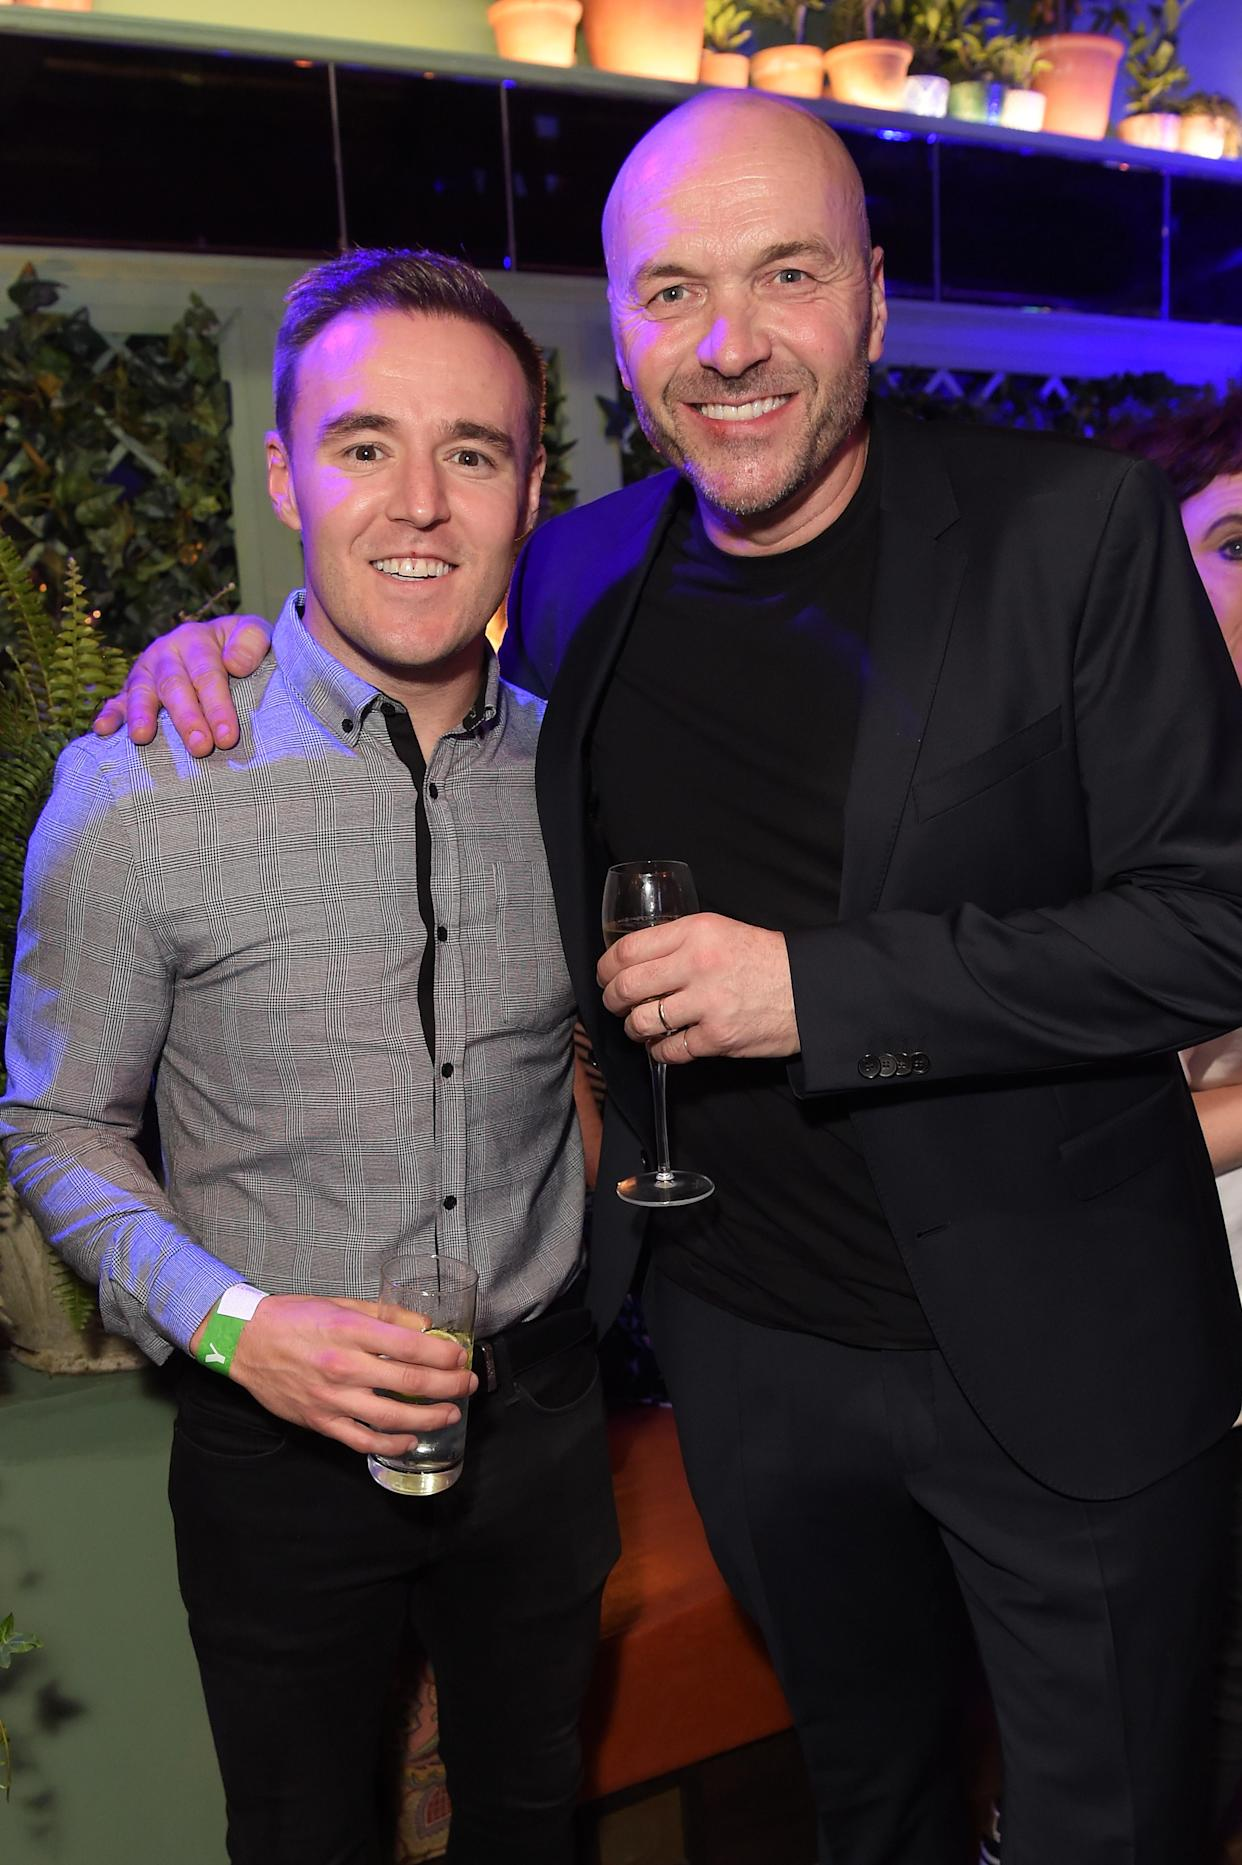 MANCHESTER, ENGLAND - NOVEMBER 23: Alan Halsall and Simon Rimmer attend The Ivy Spinningfields VIP Launch Party on November 23, 2018 in Manchester, England. (Photo by David M. Benett/Dave Benett/Getty Images for The Ivy)